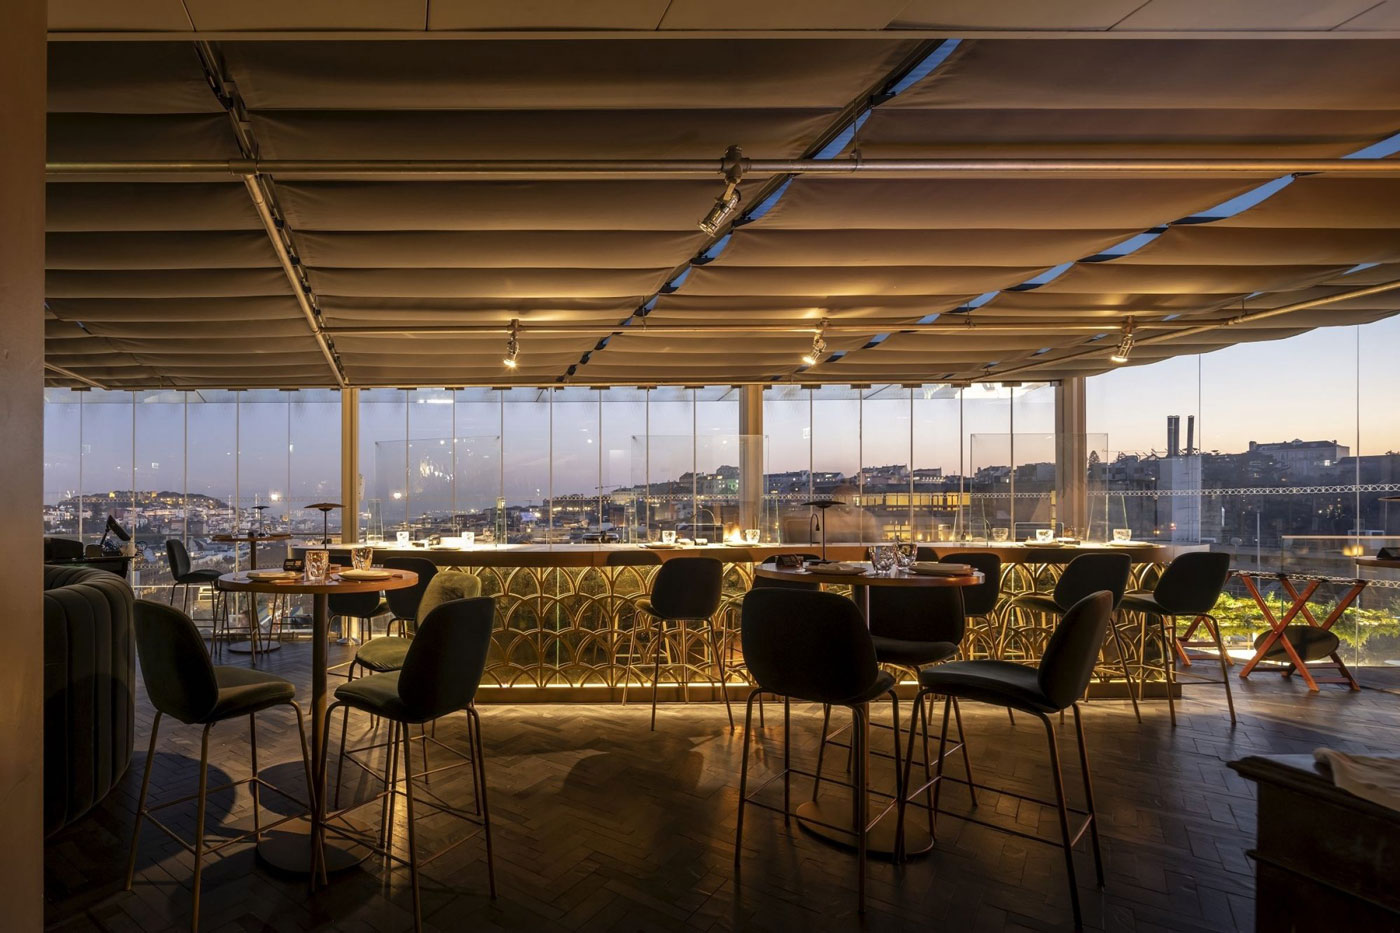 Biophilic Lisbon restaurant Seen invites diners to an art-deco forest